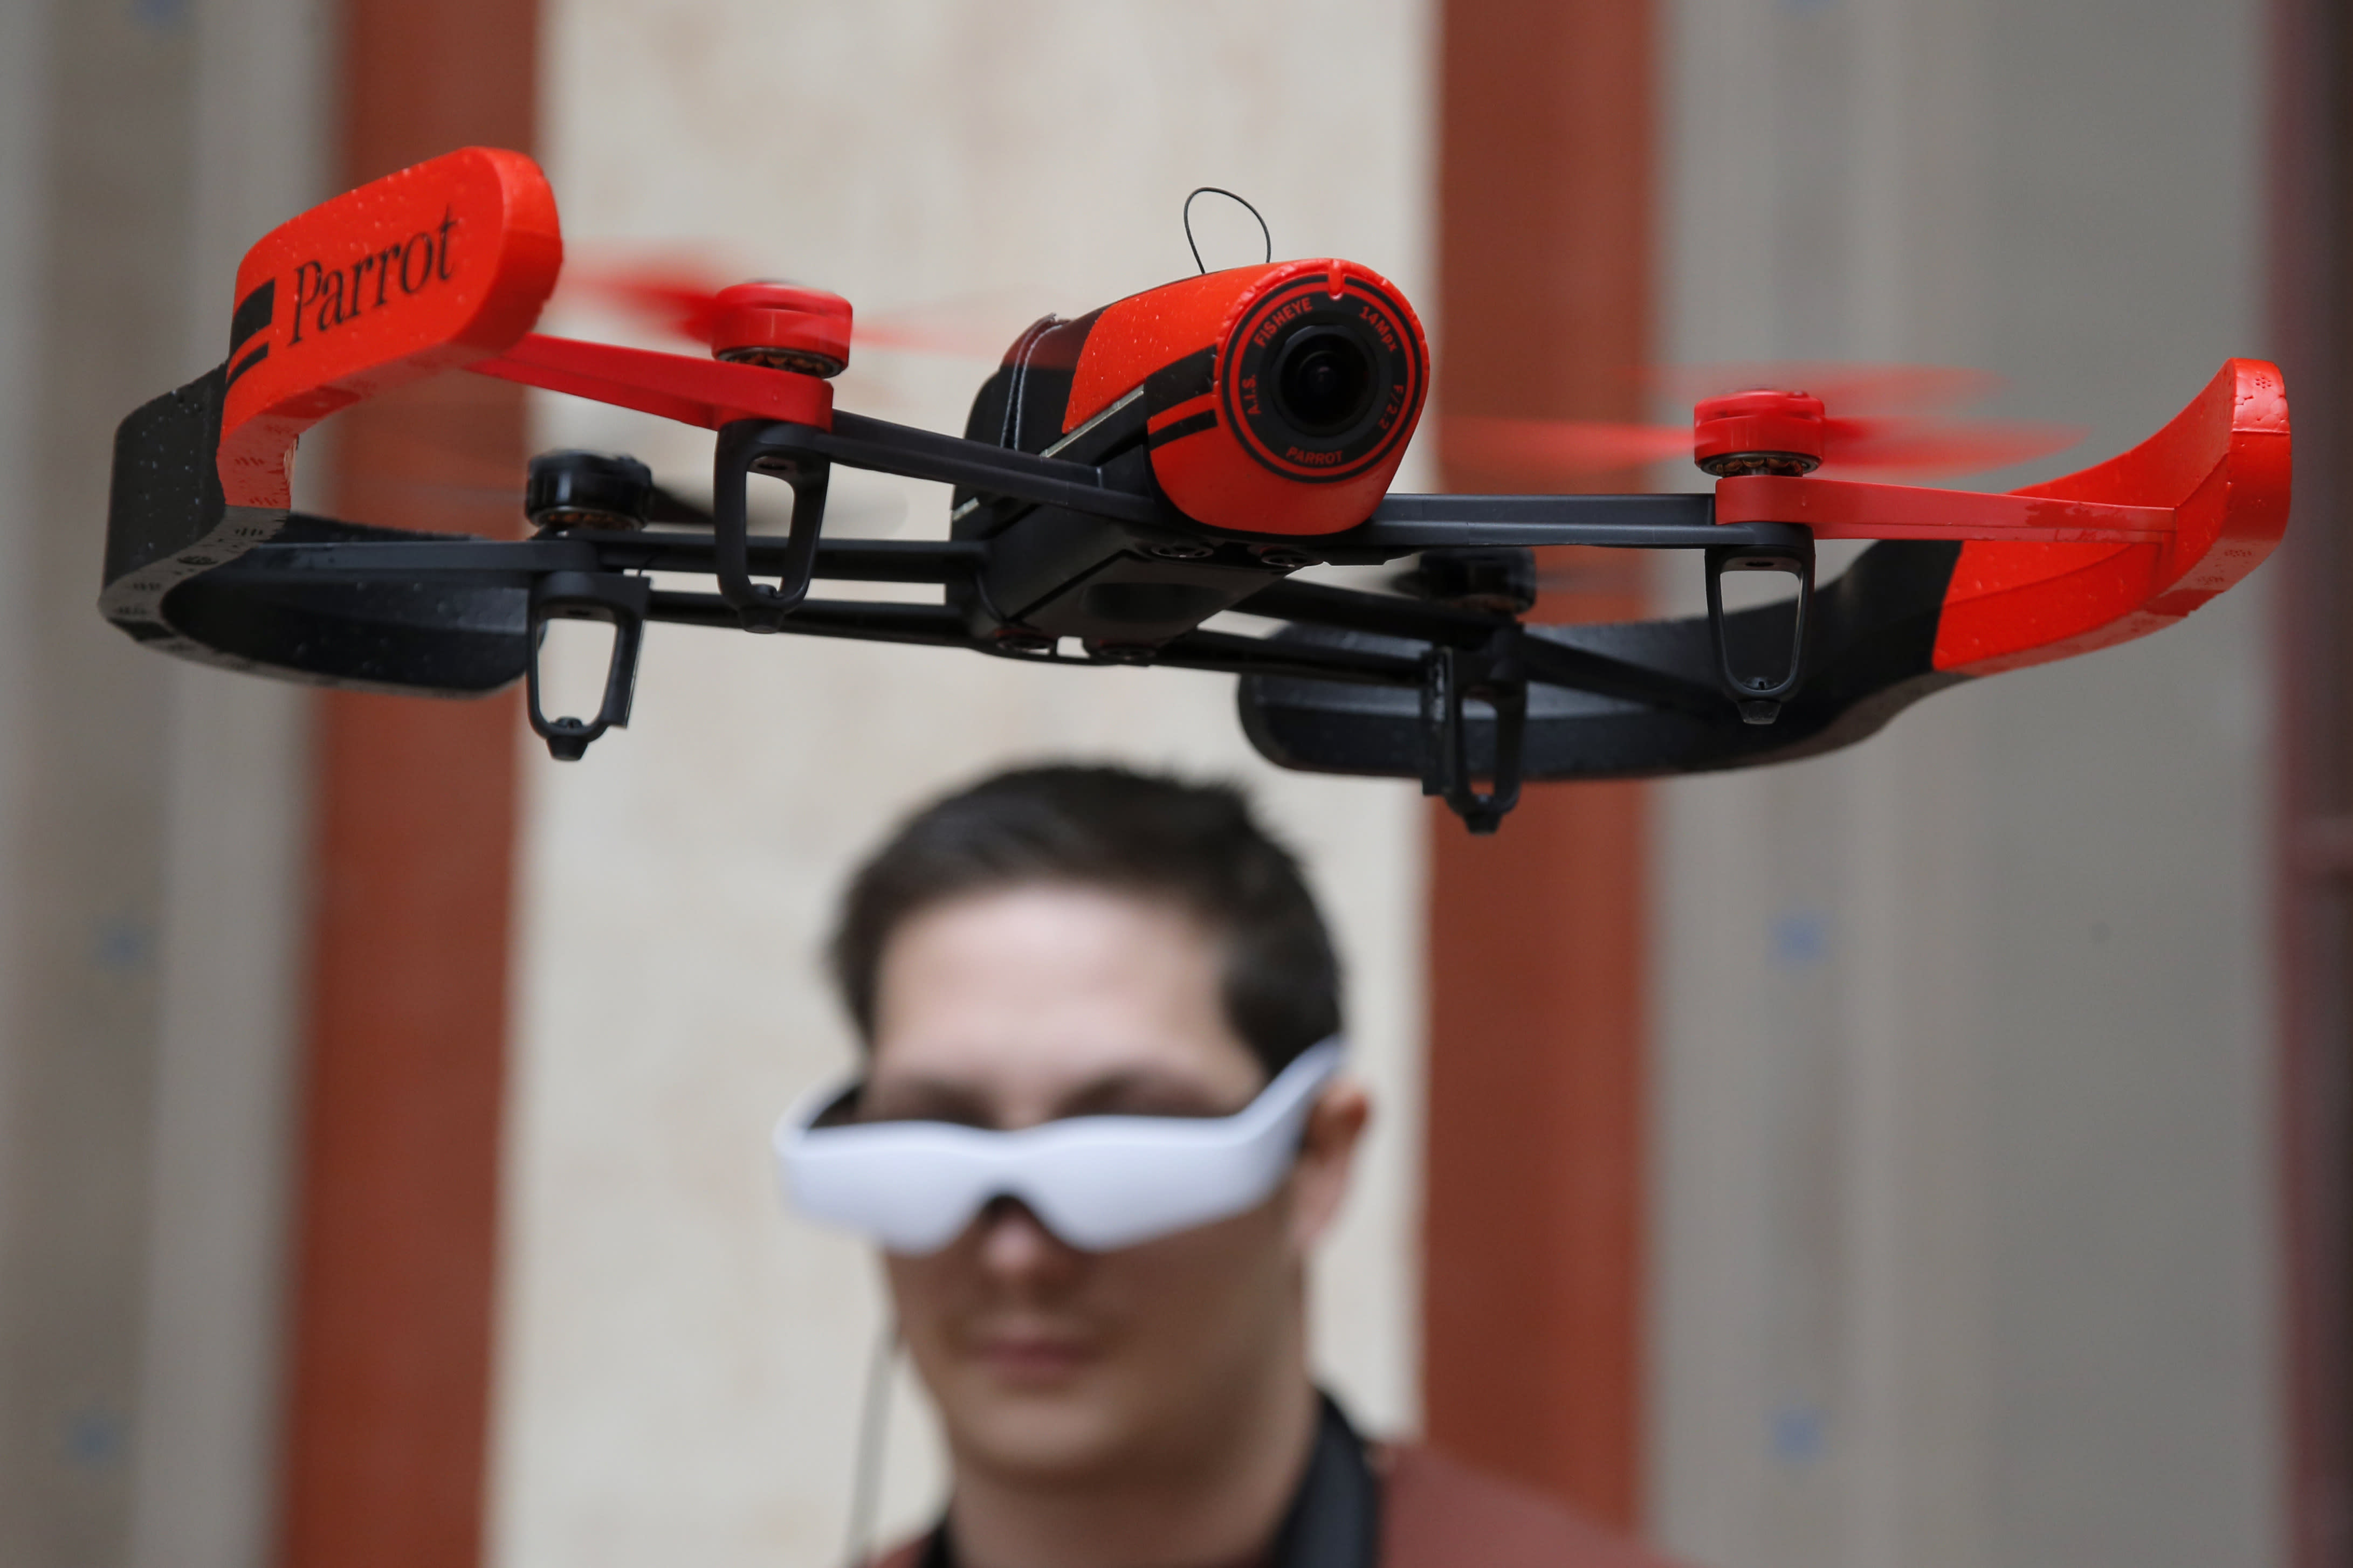 Drones become popular holiday gifts